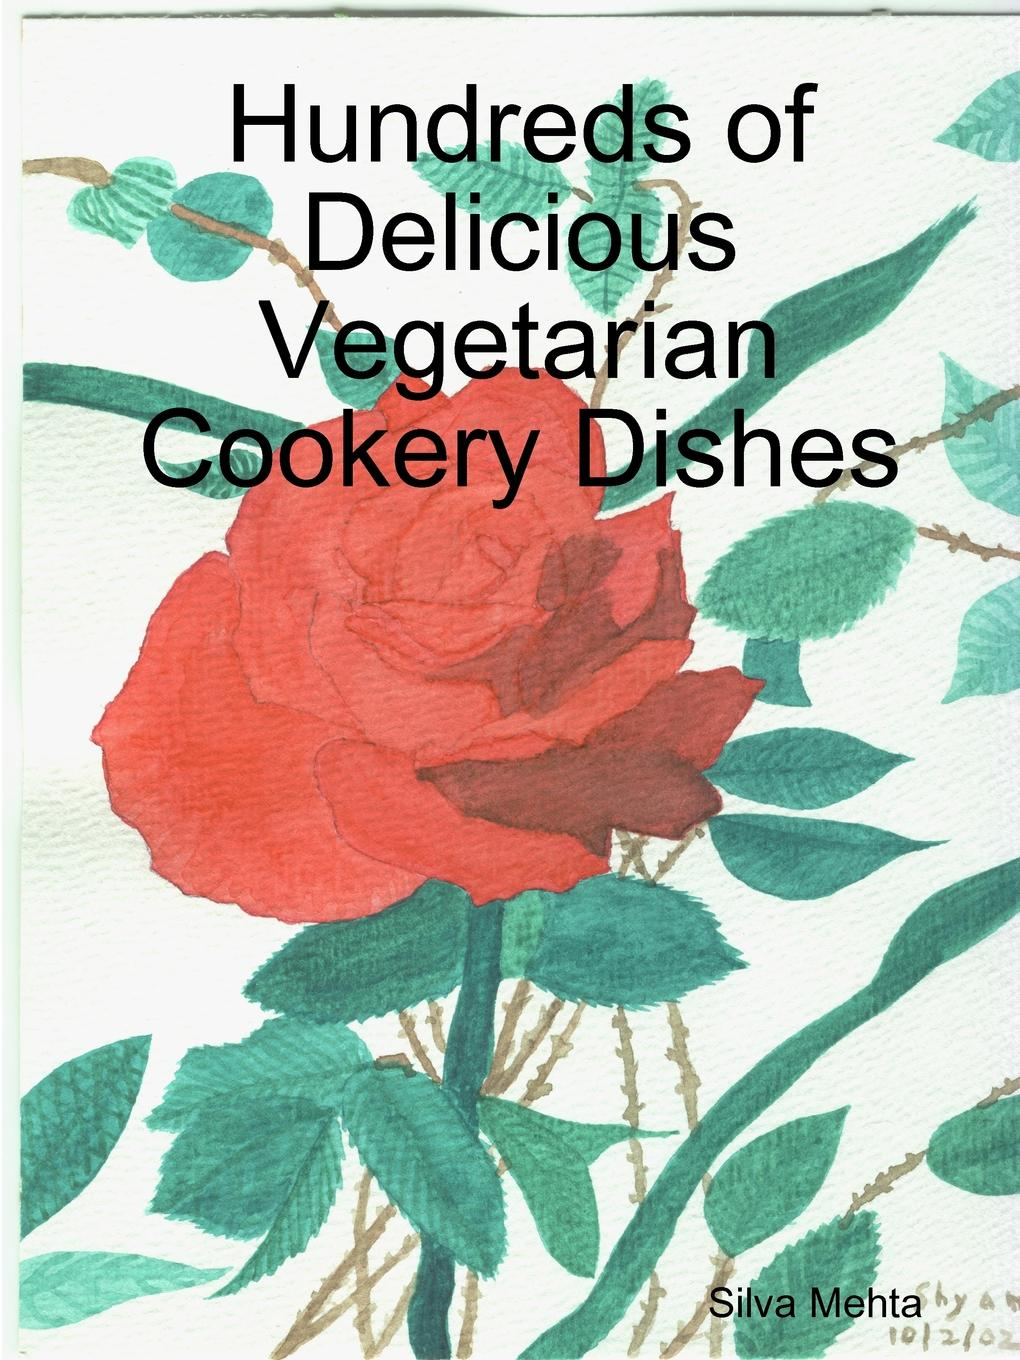 Silva Mehta Hundreds of Delicious Vegetarian Cookery Dishes thalgo sweet and savoury body scrub